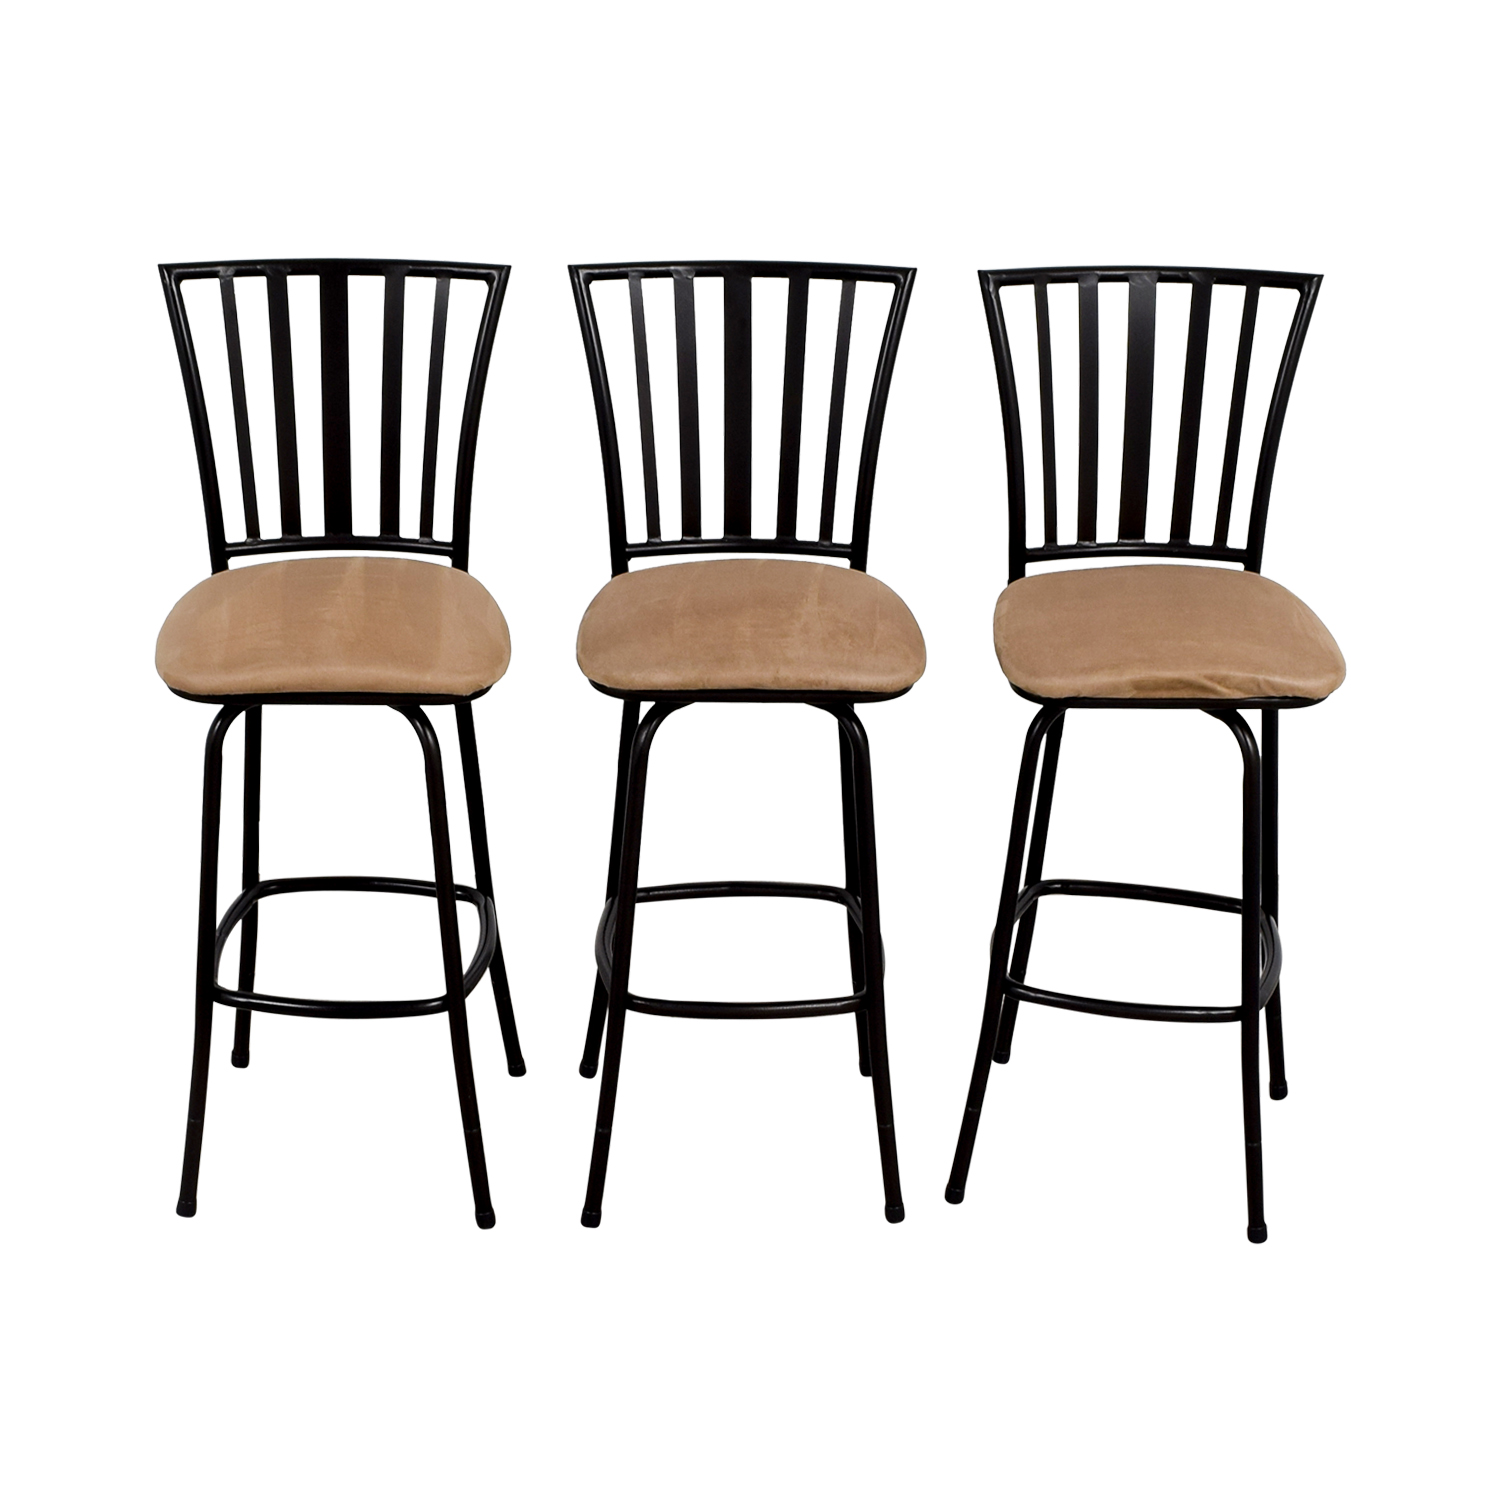 buy Tan Upholstered Stools with Black Frame Chairs